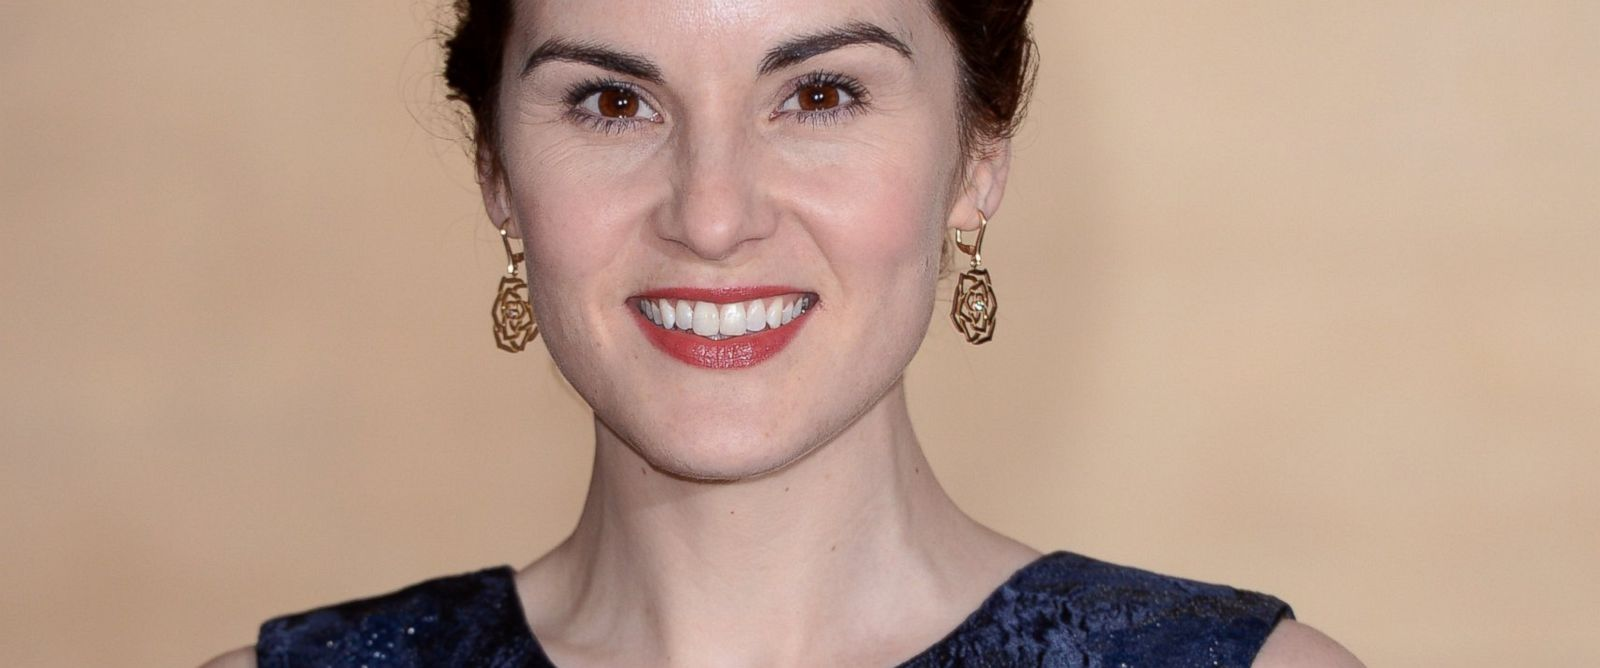 PHOTO: Michelle Dockery attends the Changing Faces Gala Dinner held at Bloomsbury Ballroom on March 27, 2014 in London, England.